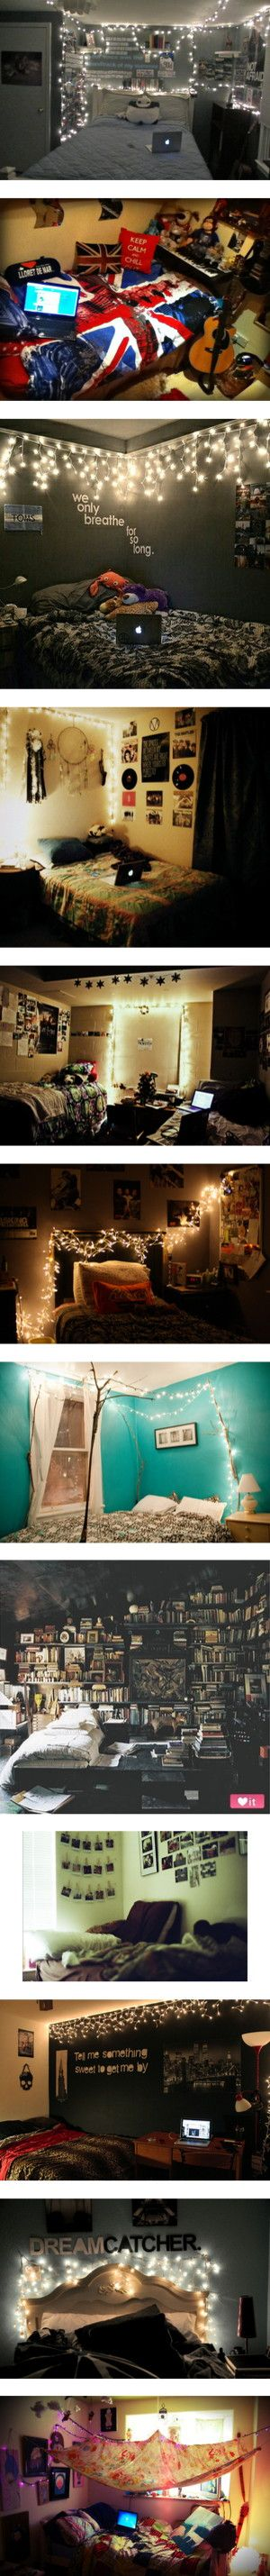 Indie Hipster Bedrooms -  indie hipster bedroom inspiration by for the love of